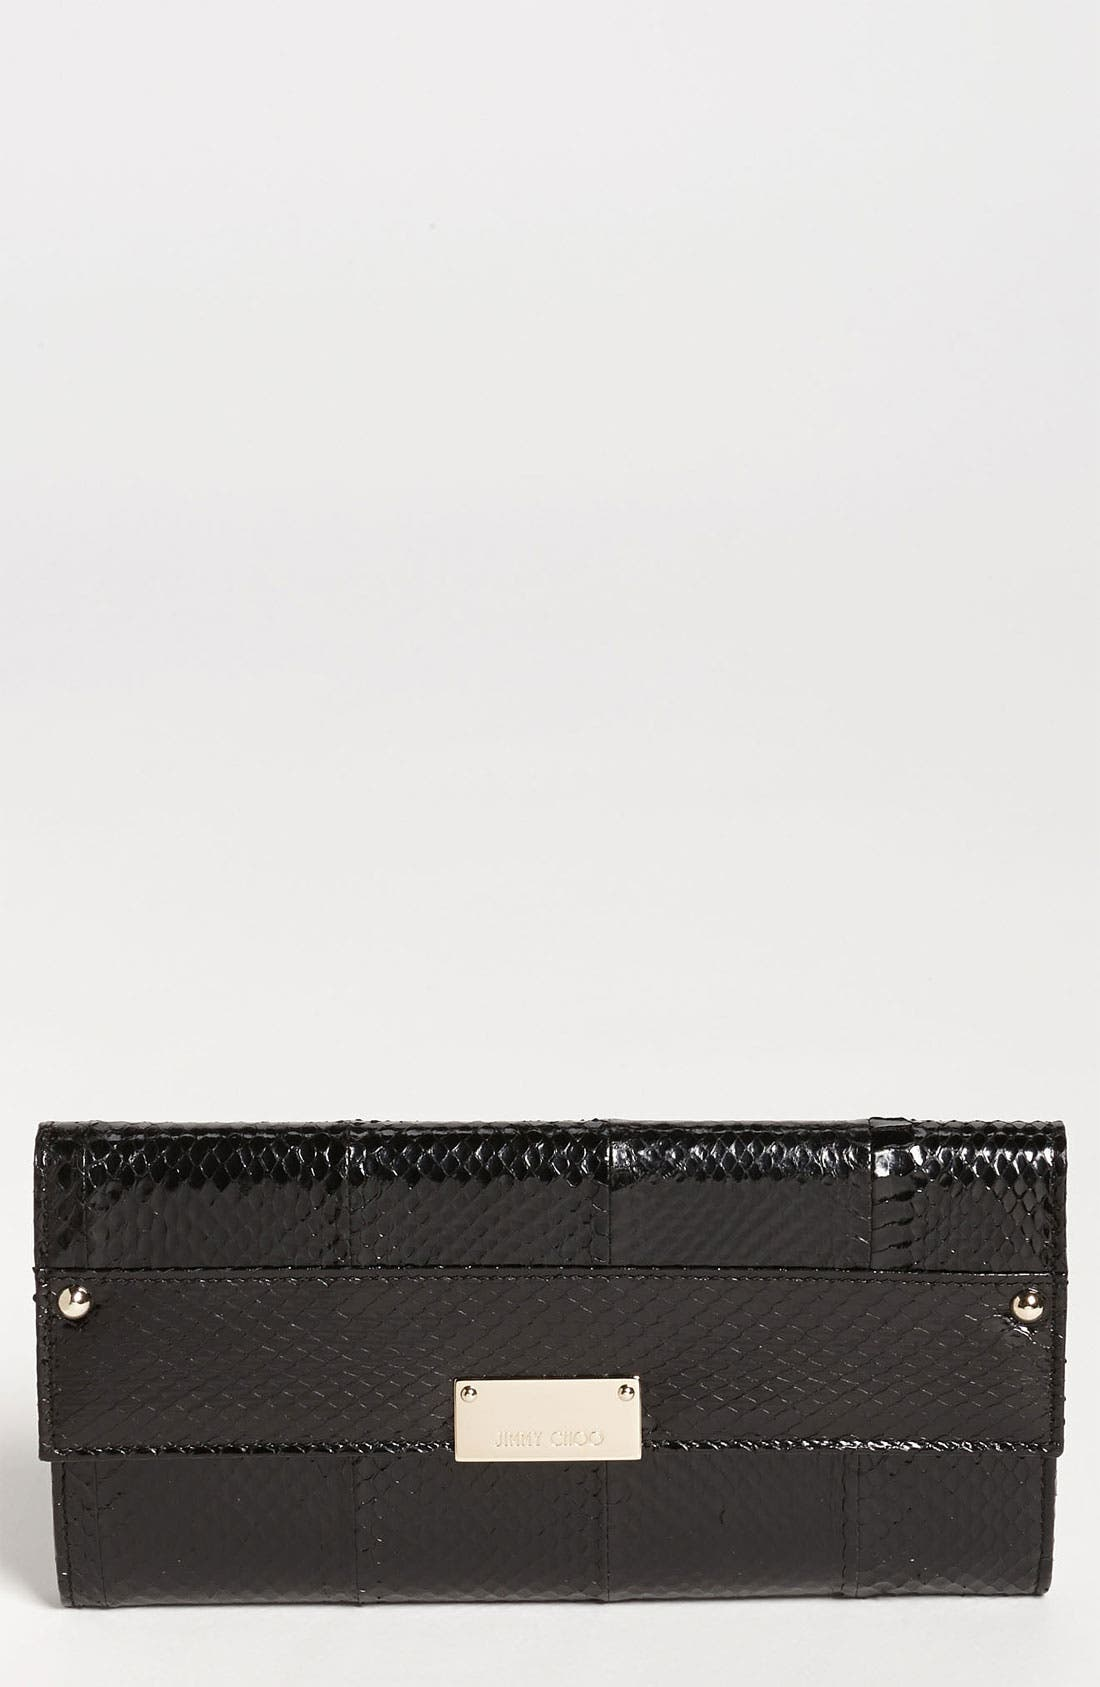 Alternate Image 1 Selected - Jimmy Choo 'Reese' Genuine Snakeskin Clutch